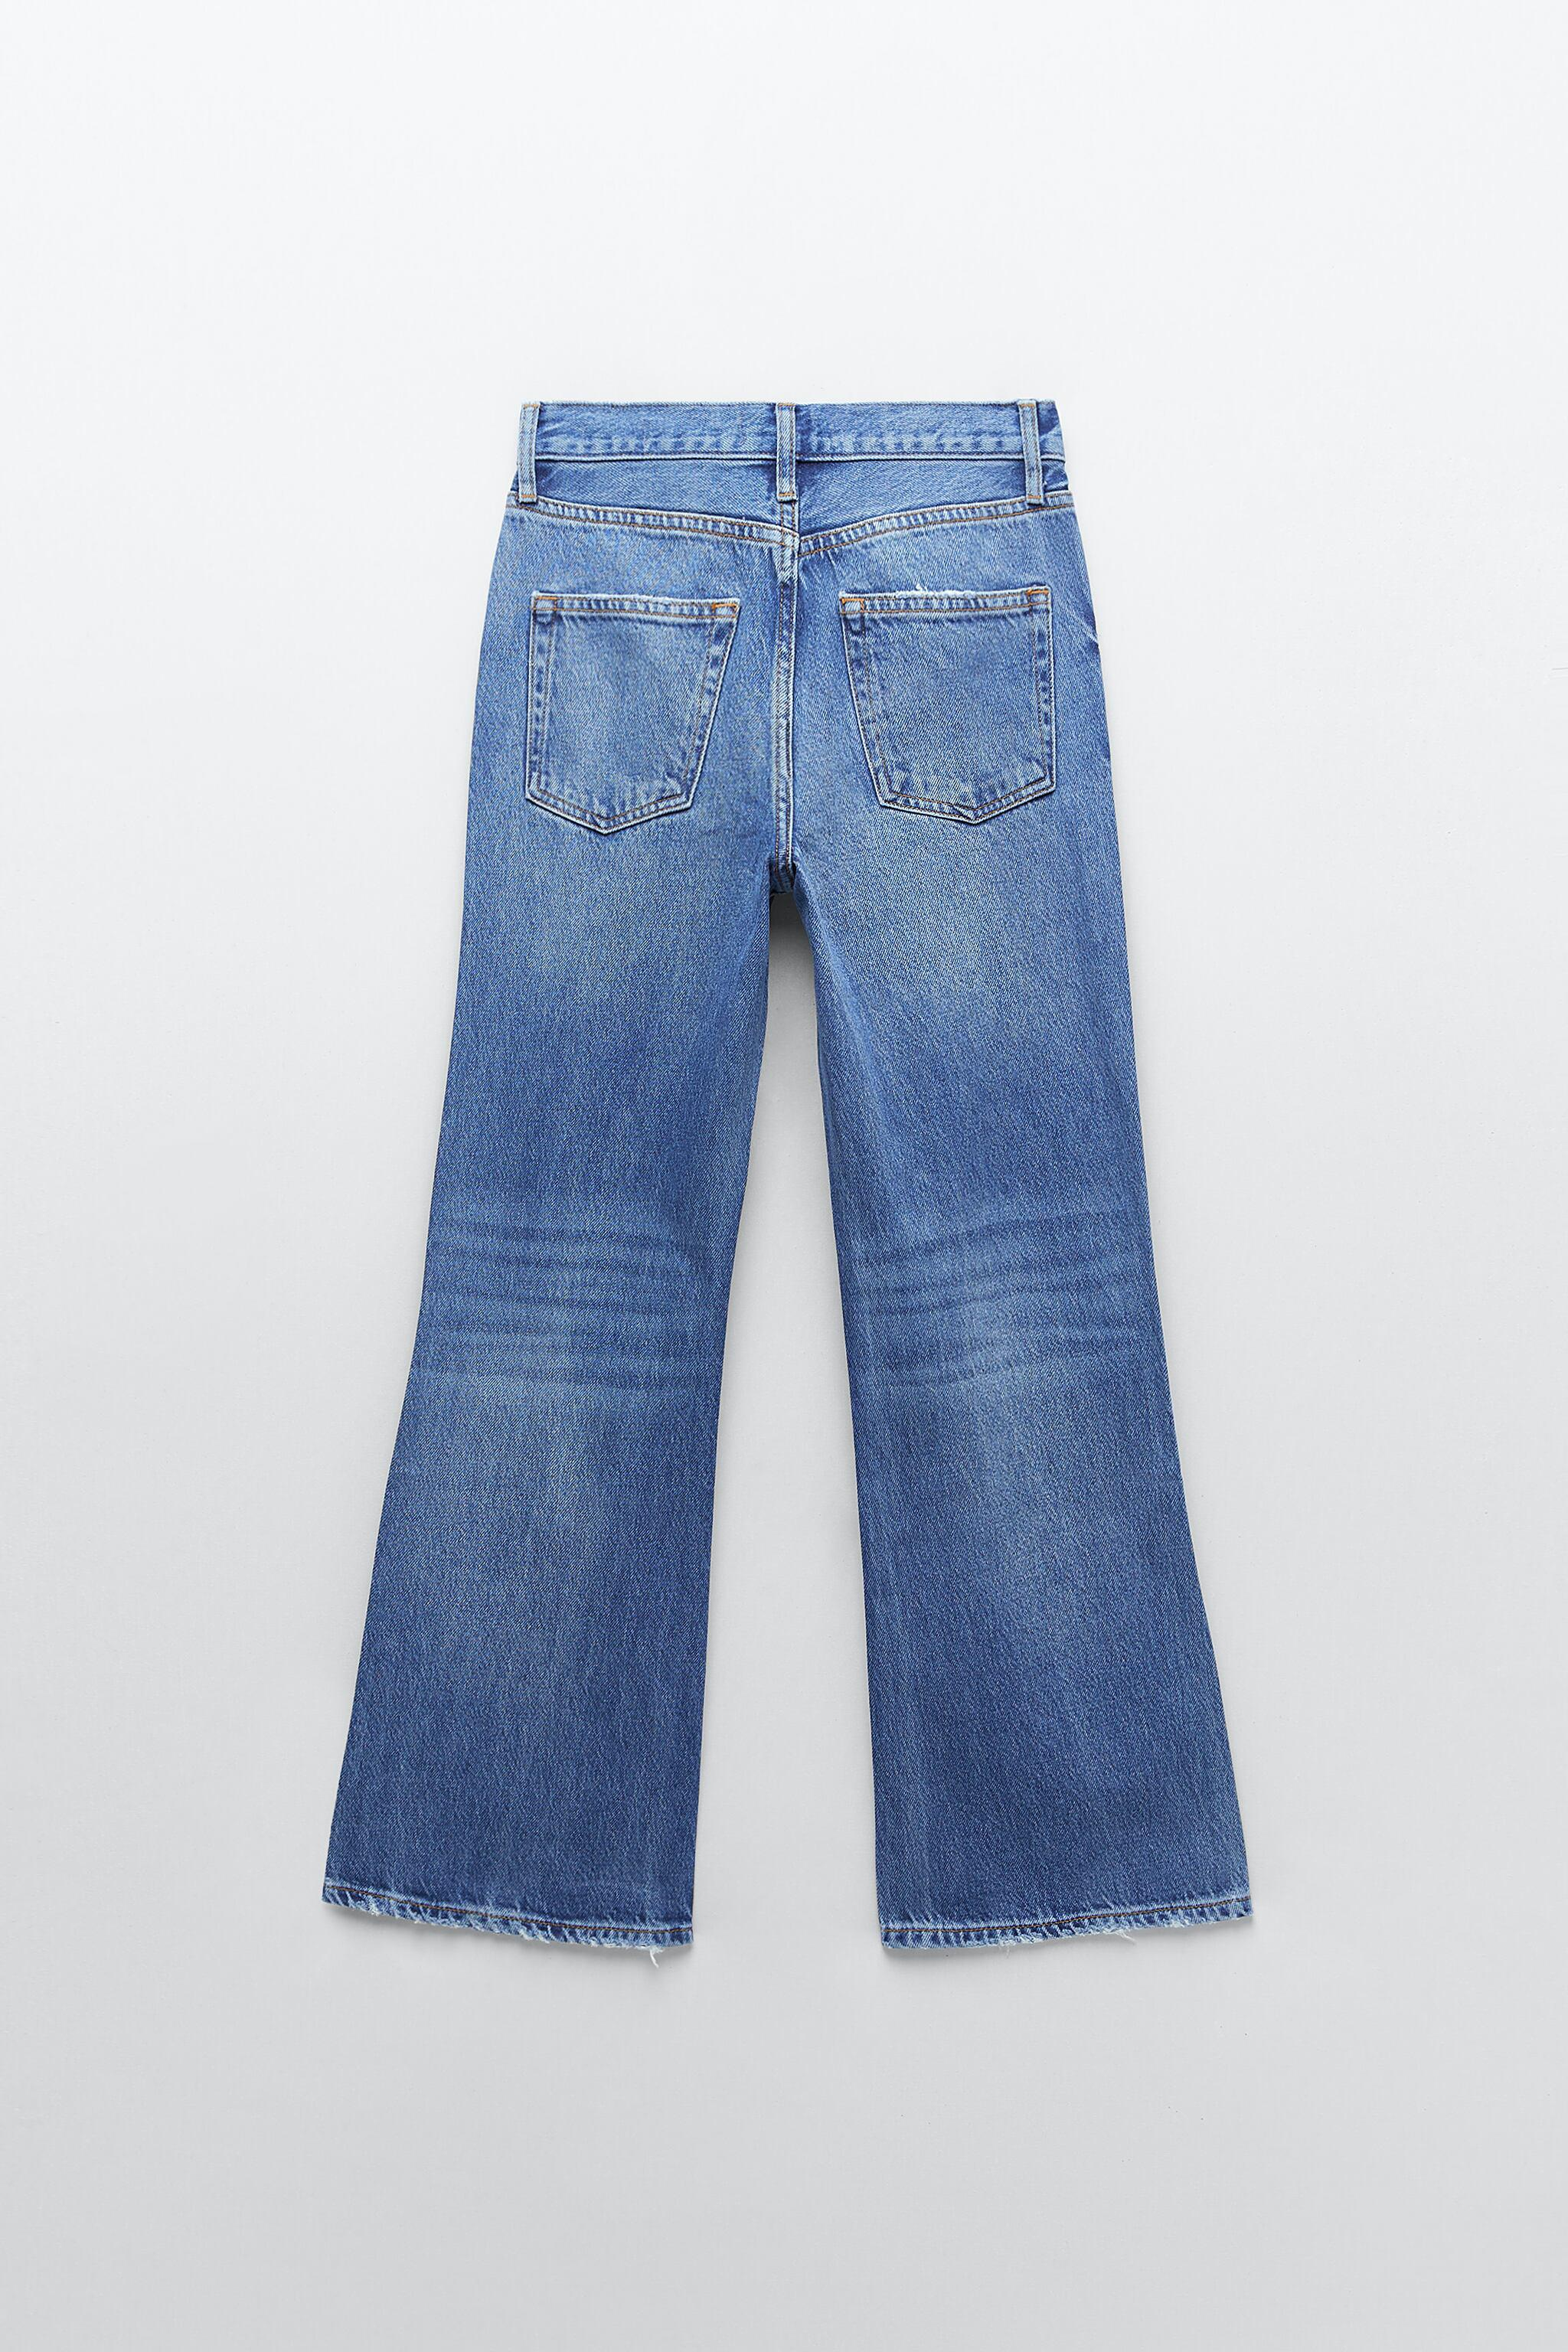 ZW THE ZIA FLARE JEANS 6